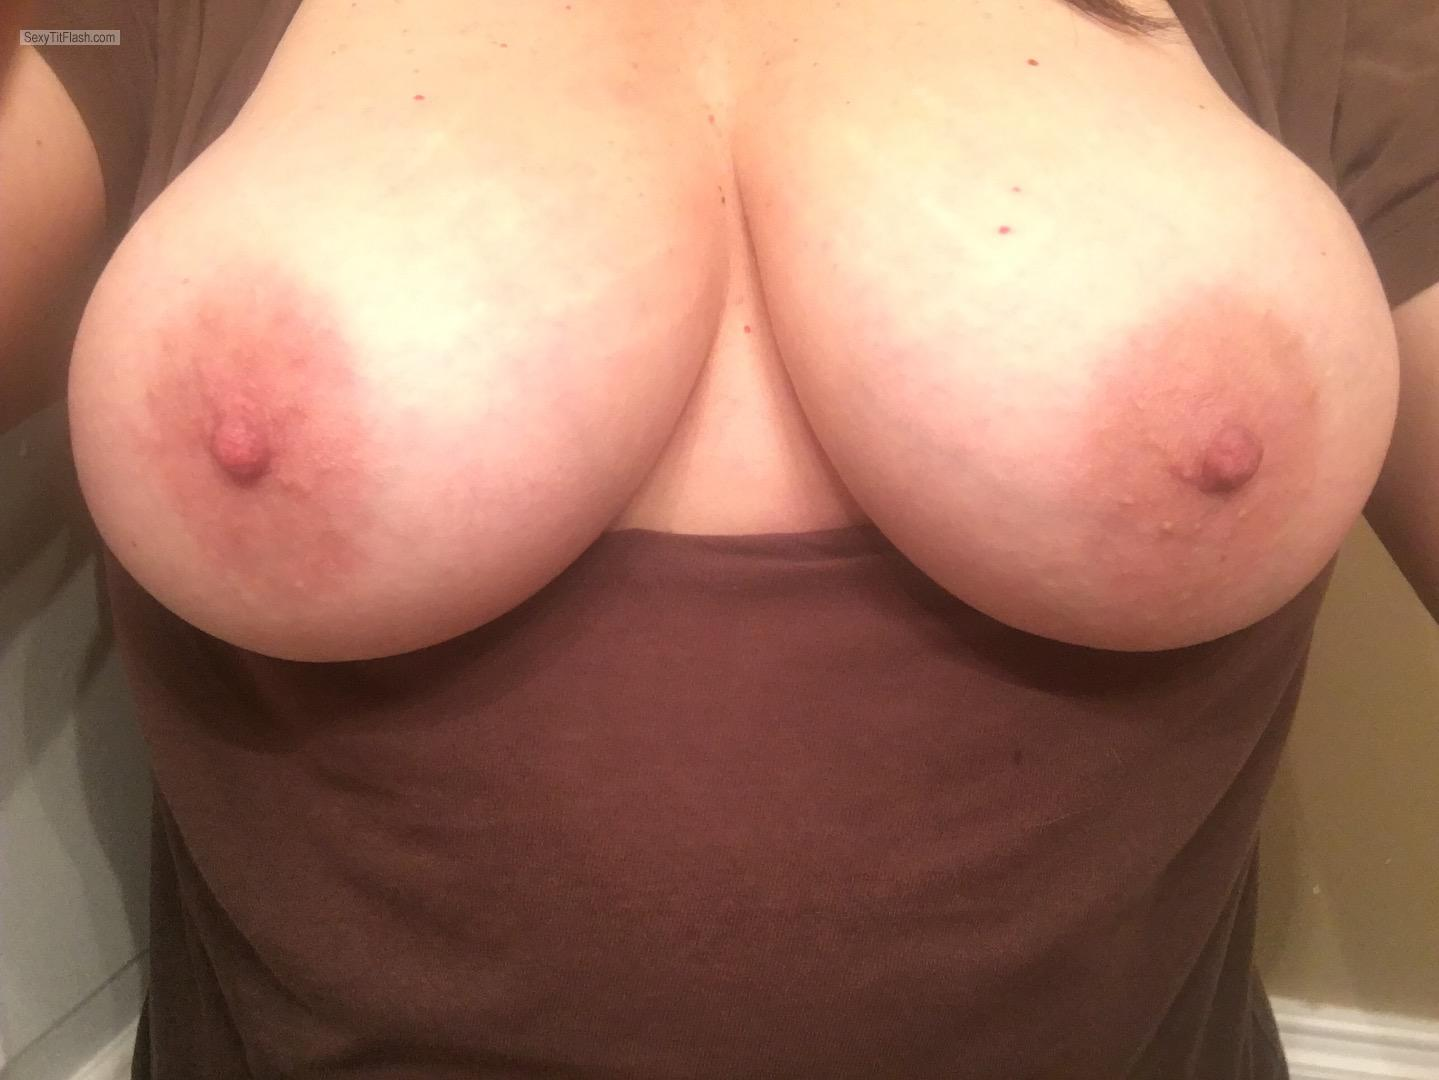 Tit Flash: My Big Tits (Selfie) - Topless Shannon from United States